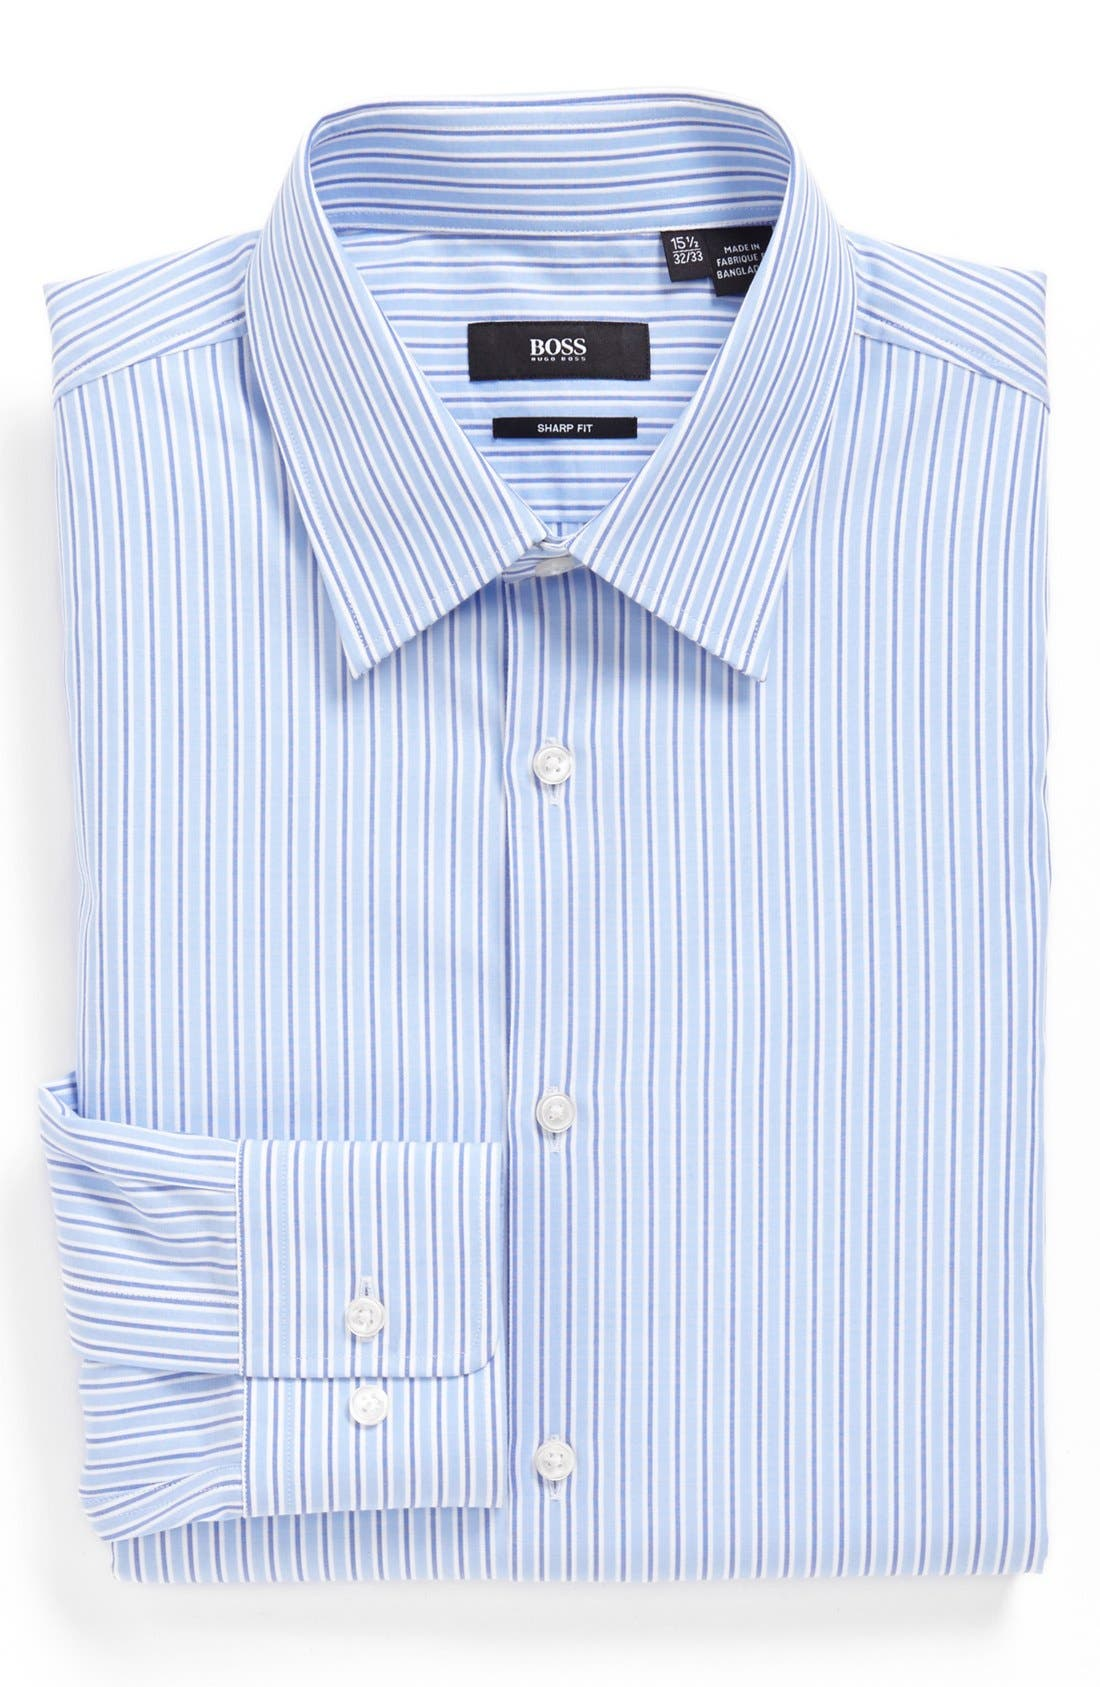 Main Image - BOSS HUGO BOSS 'Marlow' Sharp Fit Dress Shirt